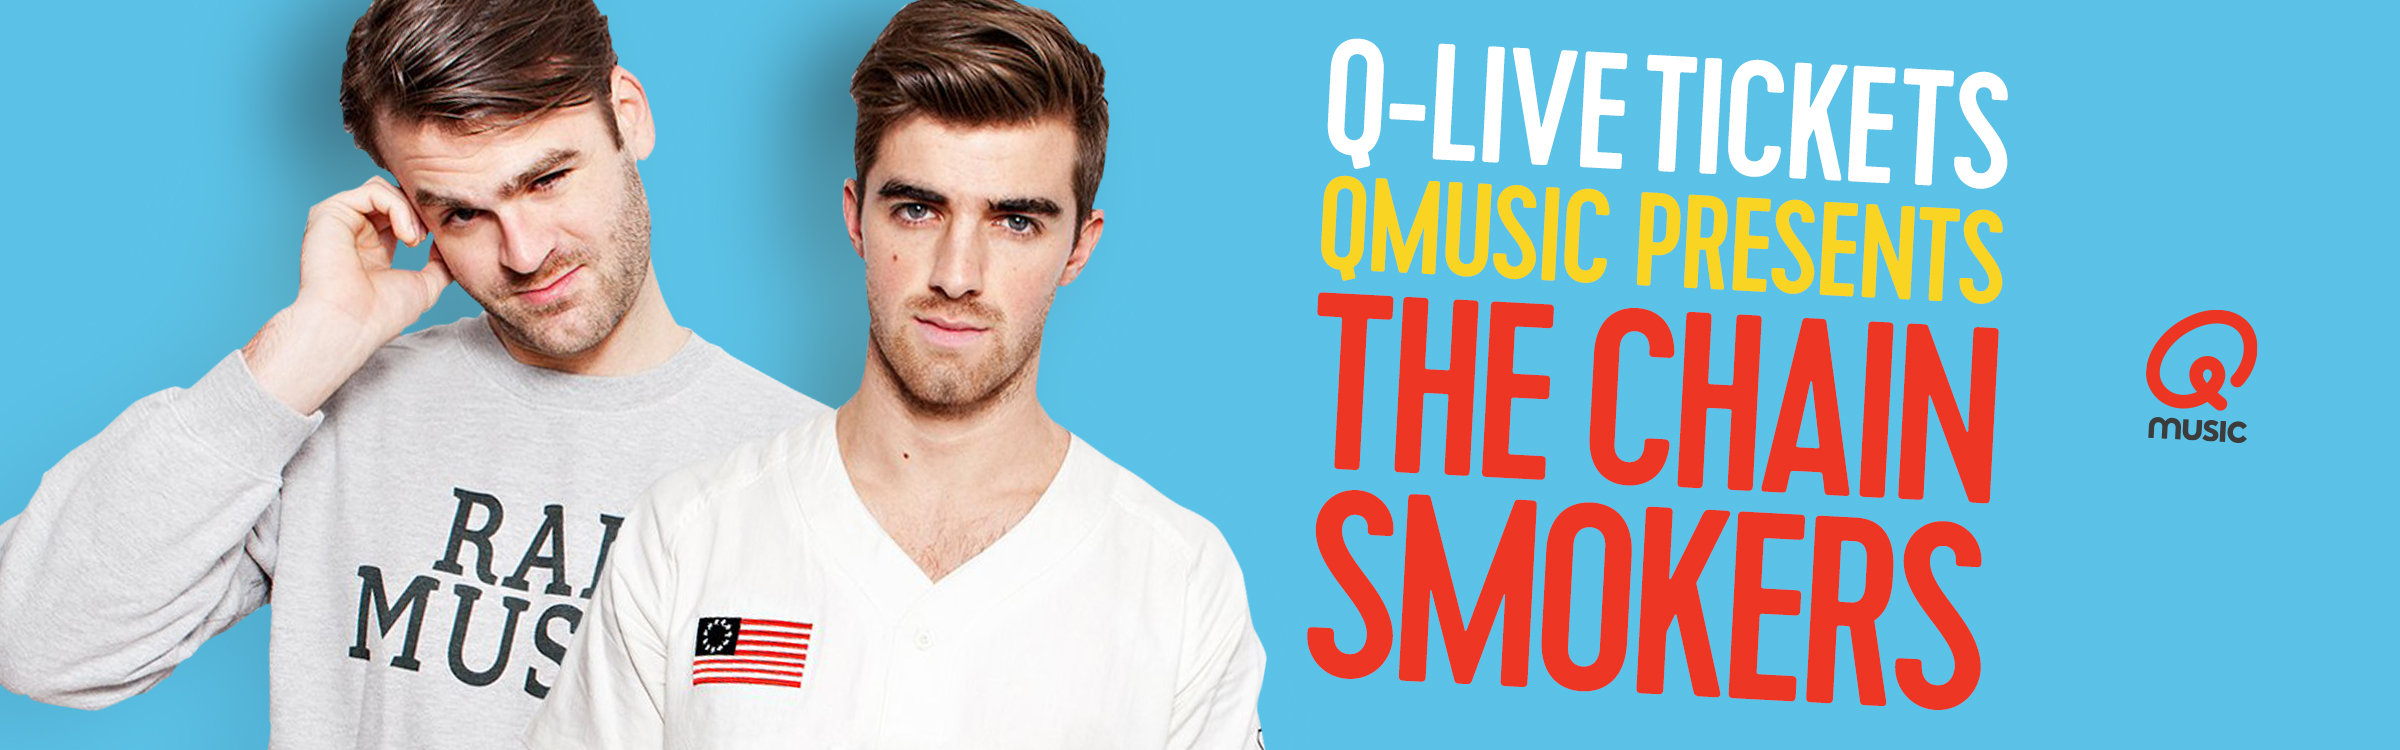 Qmusic actionheader chainsmokers